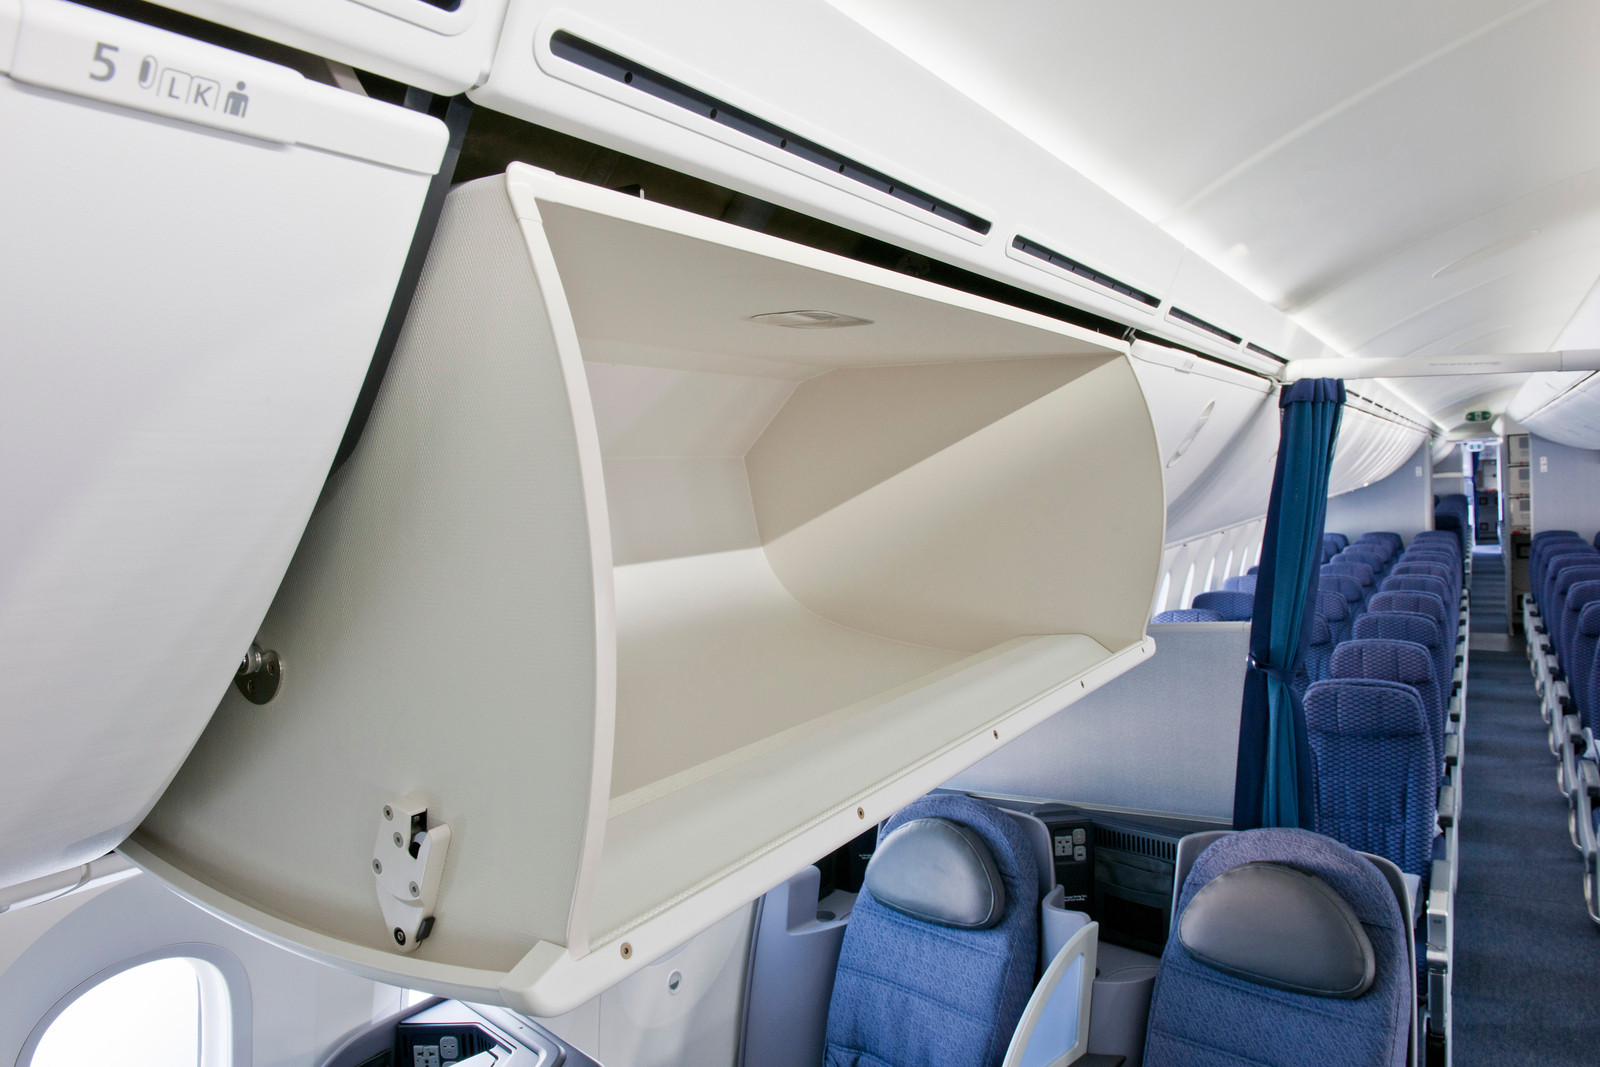 United is working to keep the bins at the back of economy clearer of bags with Basic Economy allowances. Image: United